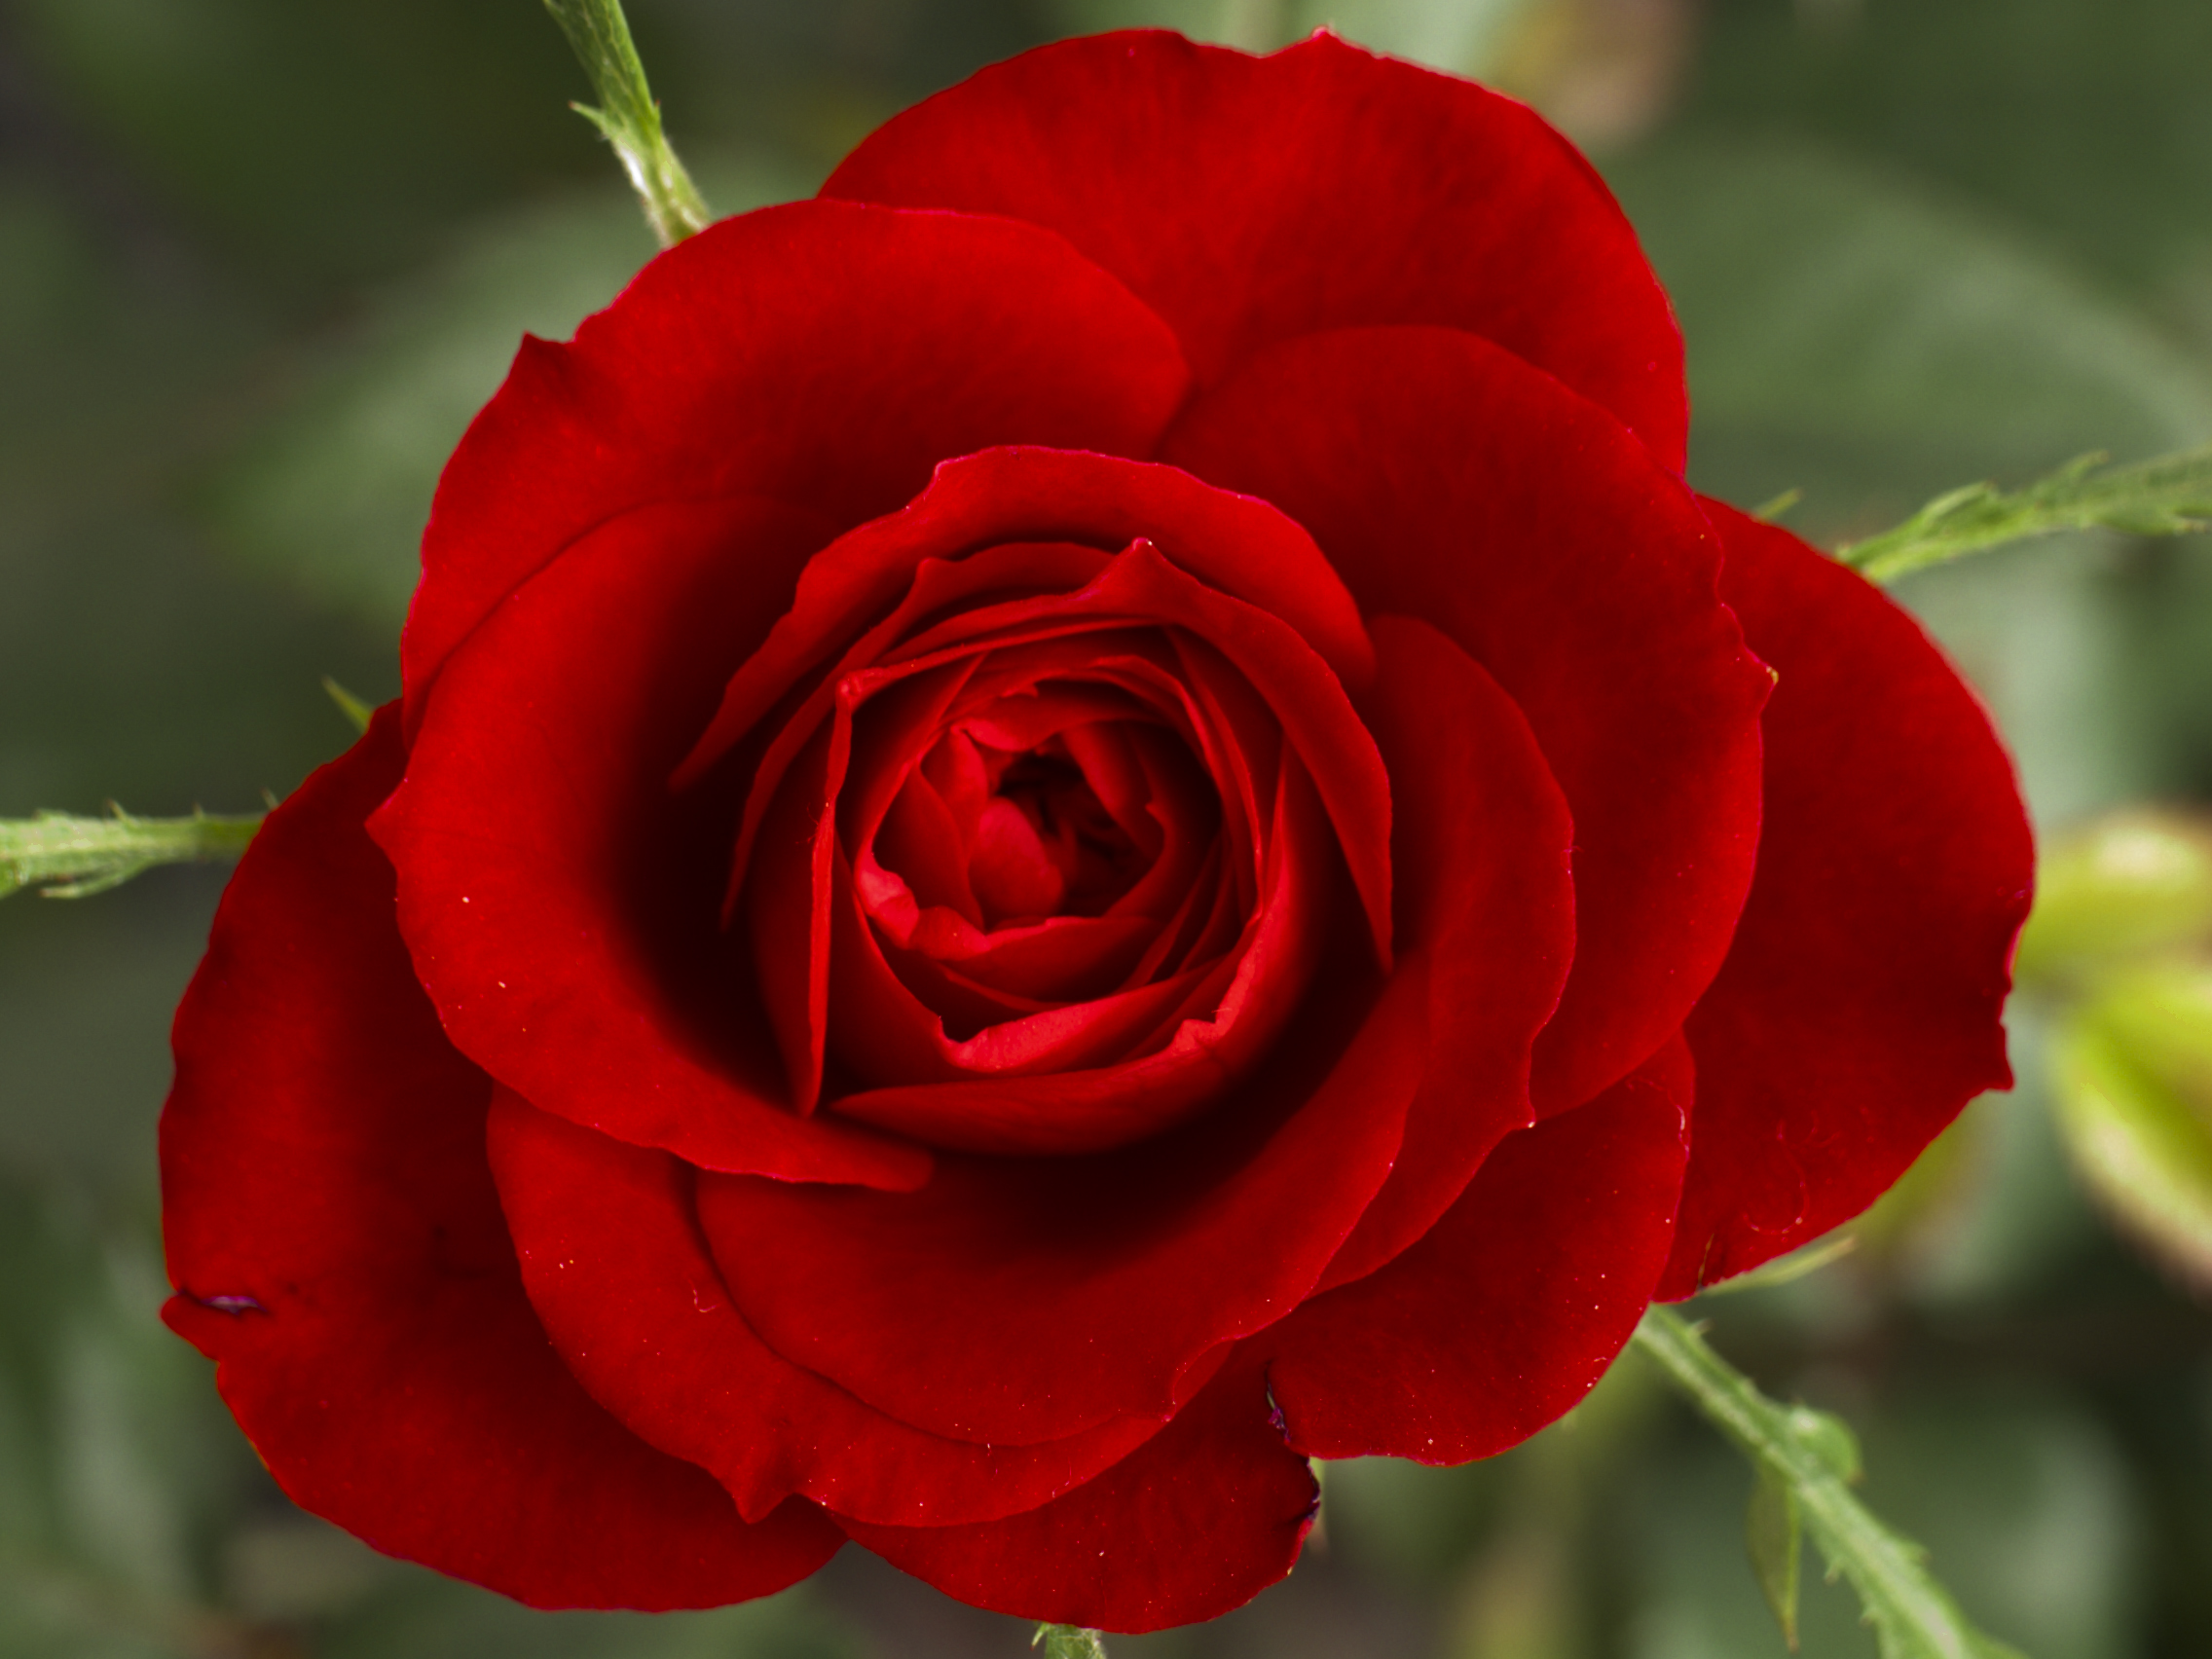 http://upload.wikimedia.org/wikipedia/commons/5/51/Small_Red_Rose.JPG